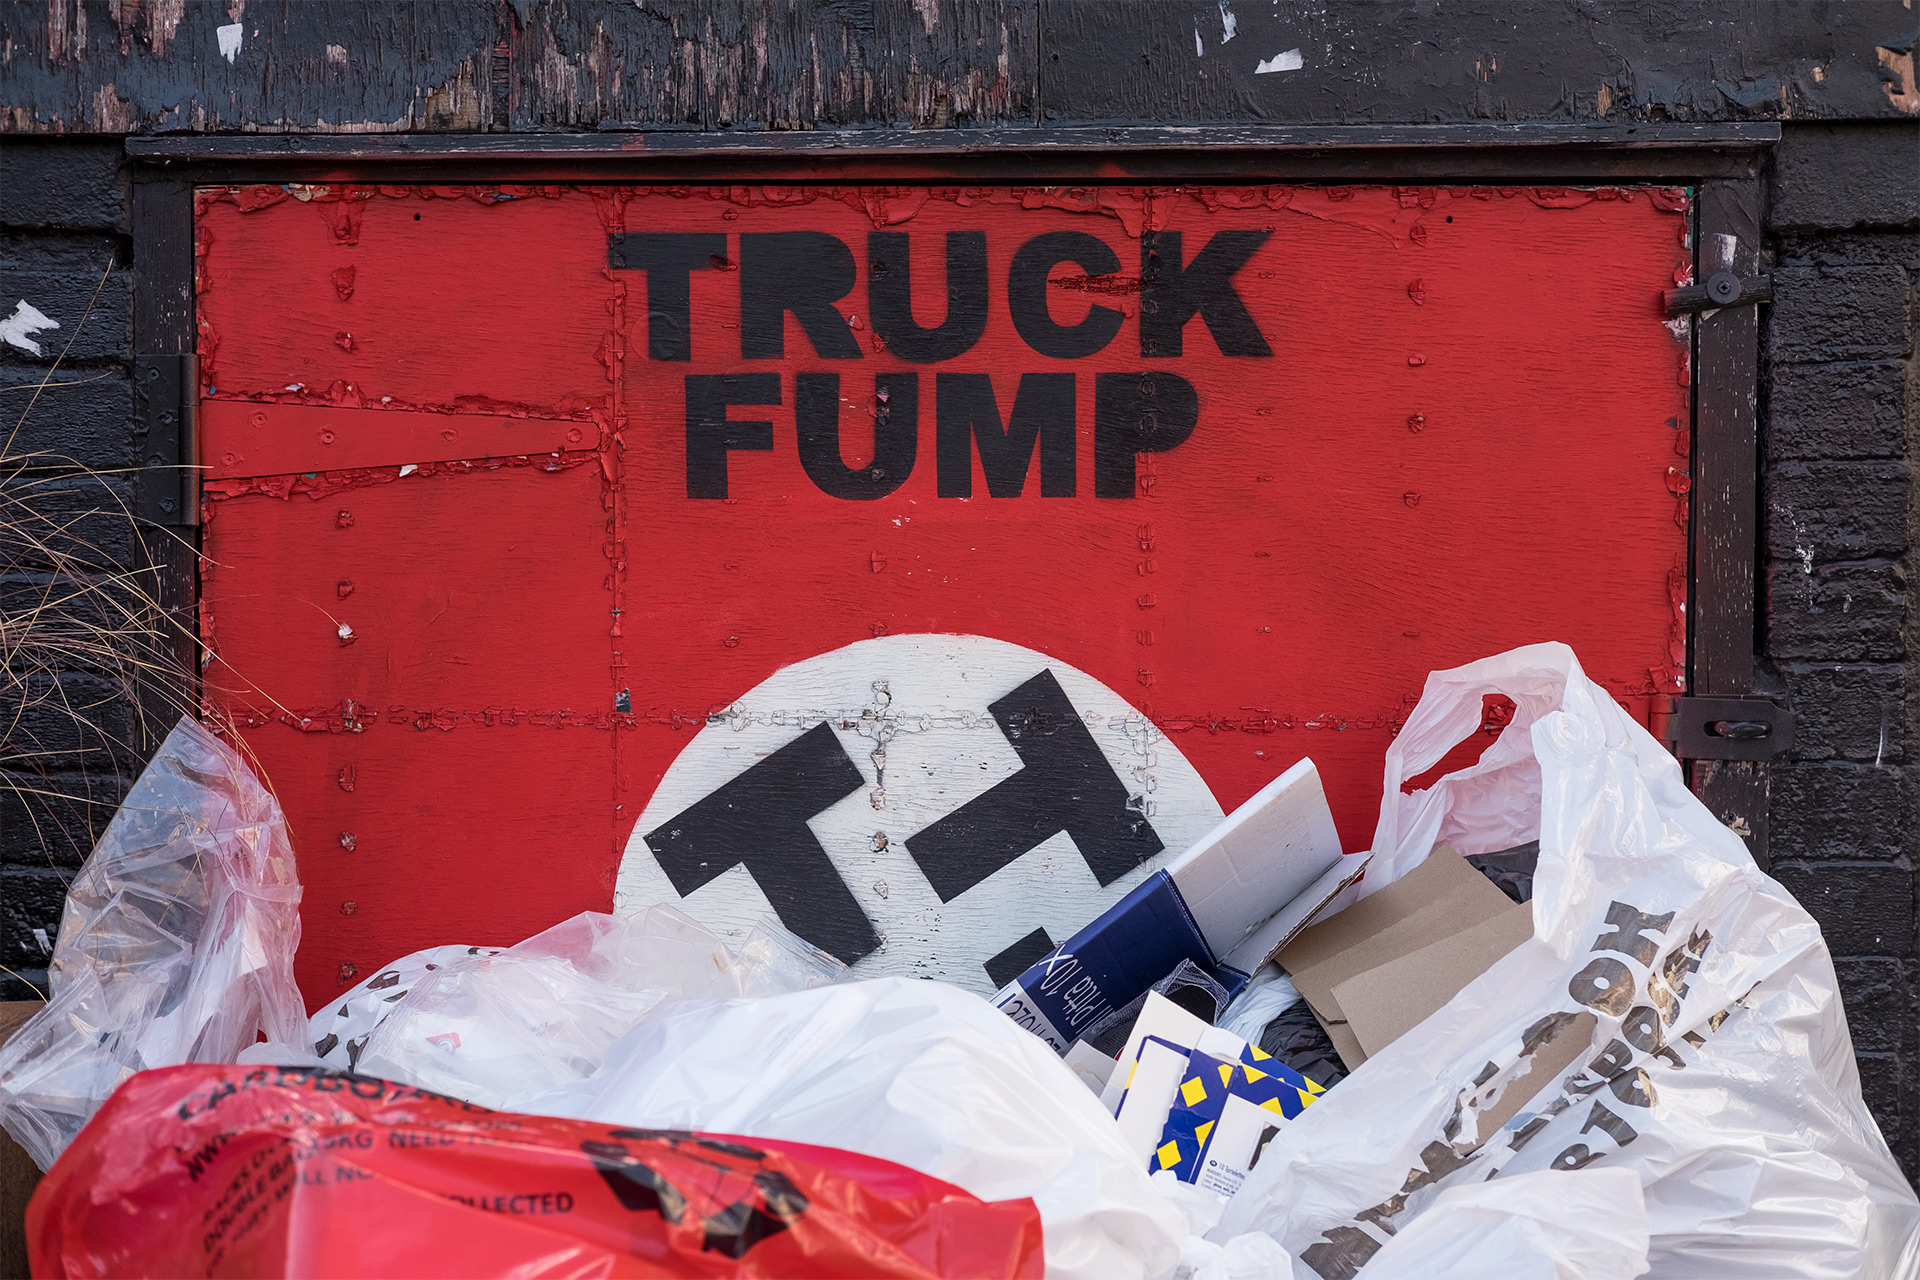 Truck Fump / Street Photography, Show the Original, Photography, Fujinon XF 35mm f/2, Fujifilm X-T1 [truck fump original]